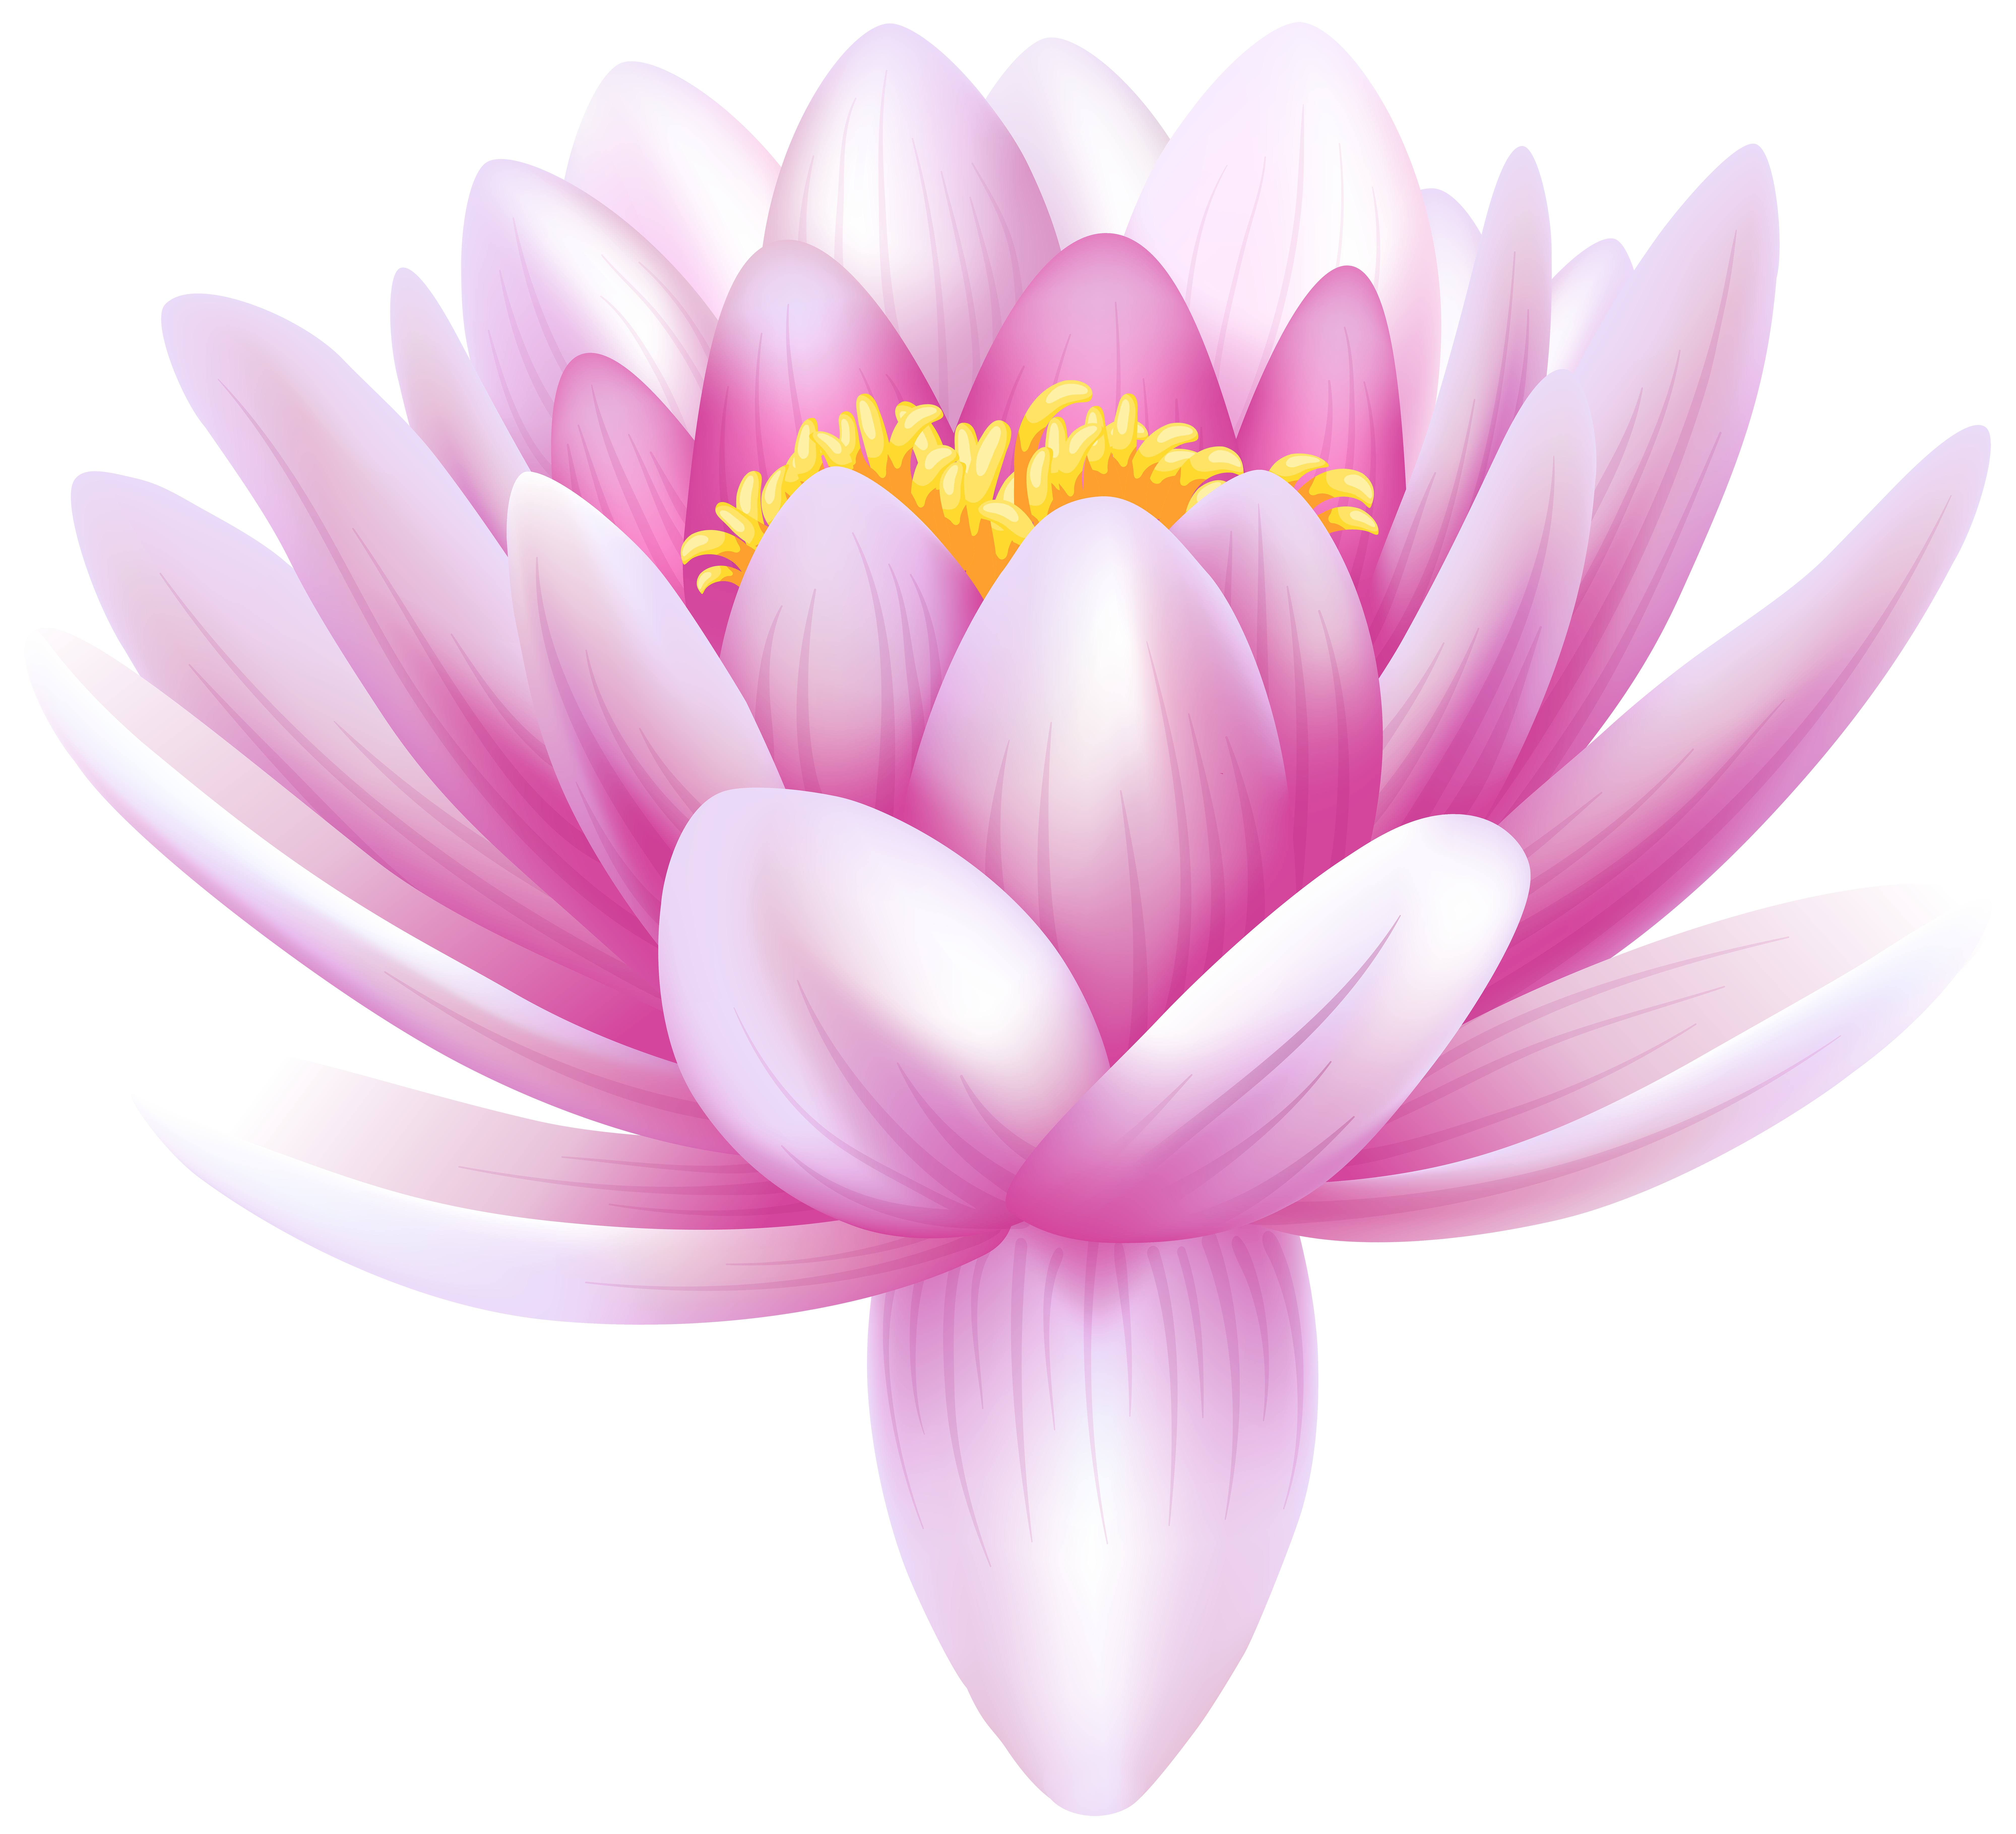 Water Lily Transparent PNG Clip Art Image.